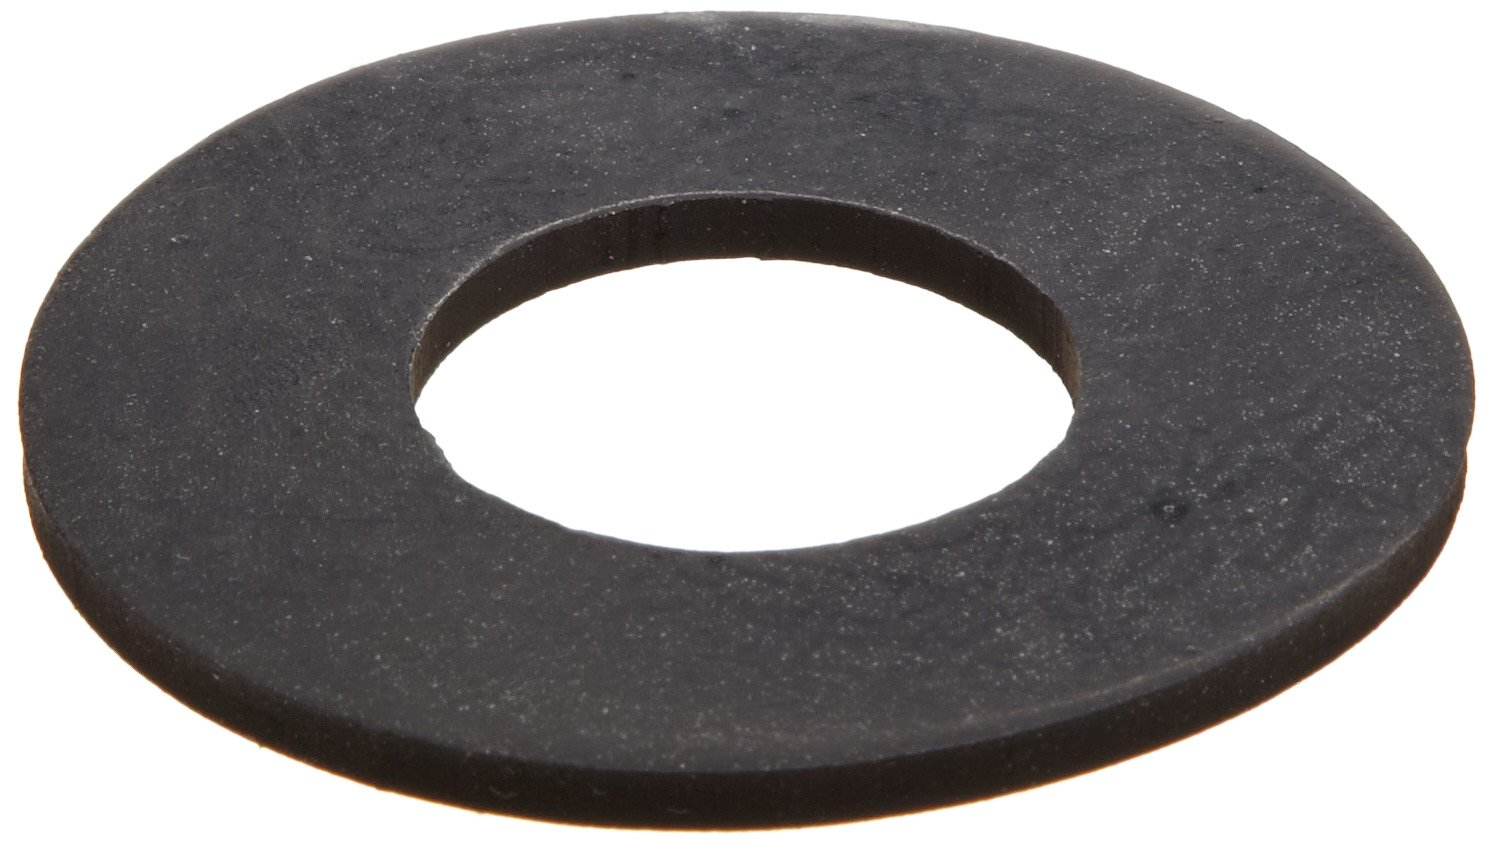 3//4 Pipe Size 3-1//2 ID Pack of 10 1//8 Thick 3//4 Pipe Size 3-1//2 ID 5-3//8 OD Fits Class 150 Flange Small Parts Black Neoprene Flange Gasket Ring 1//8 Thick Pack of 10 5-3//8 OD